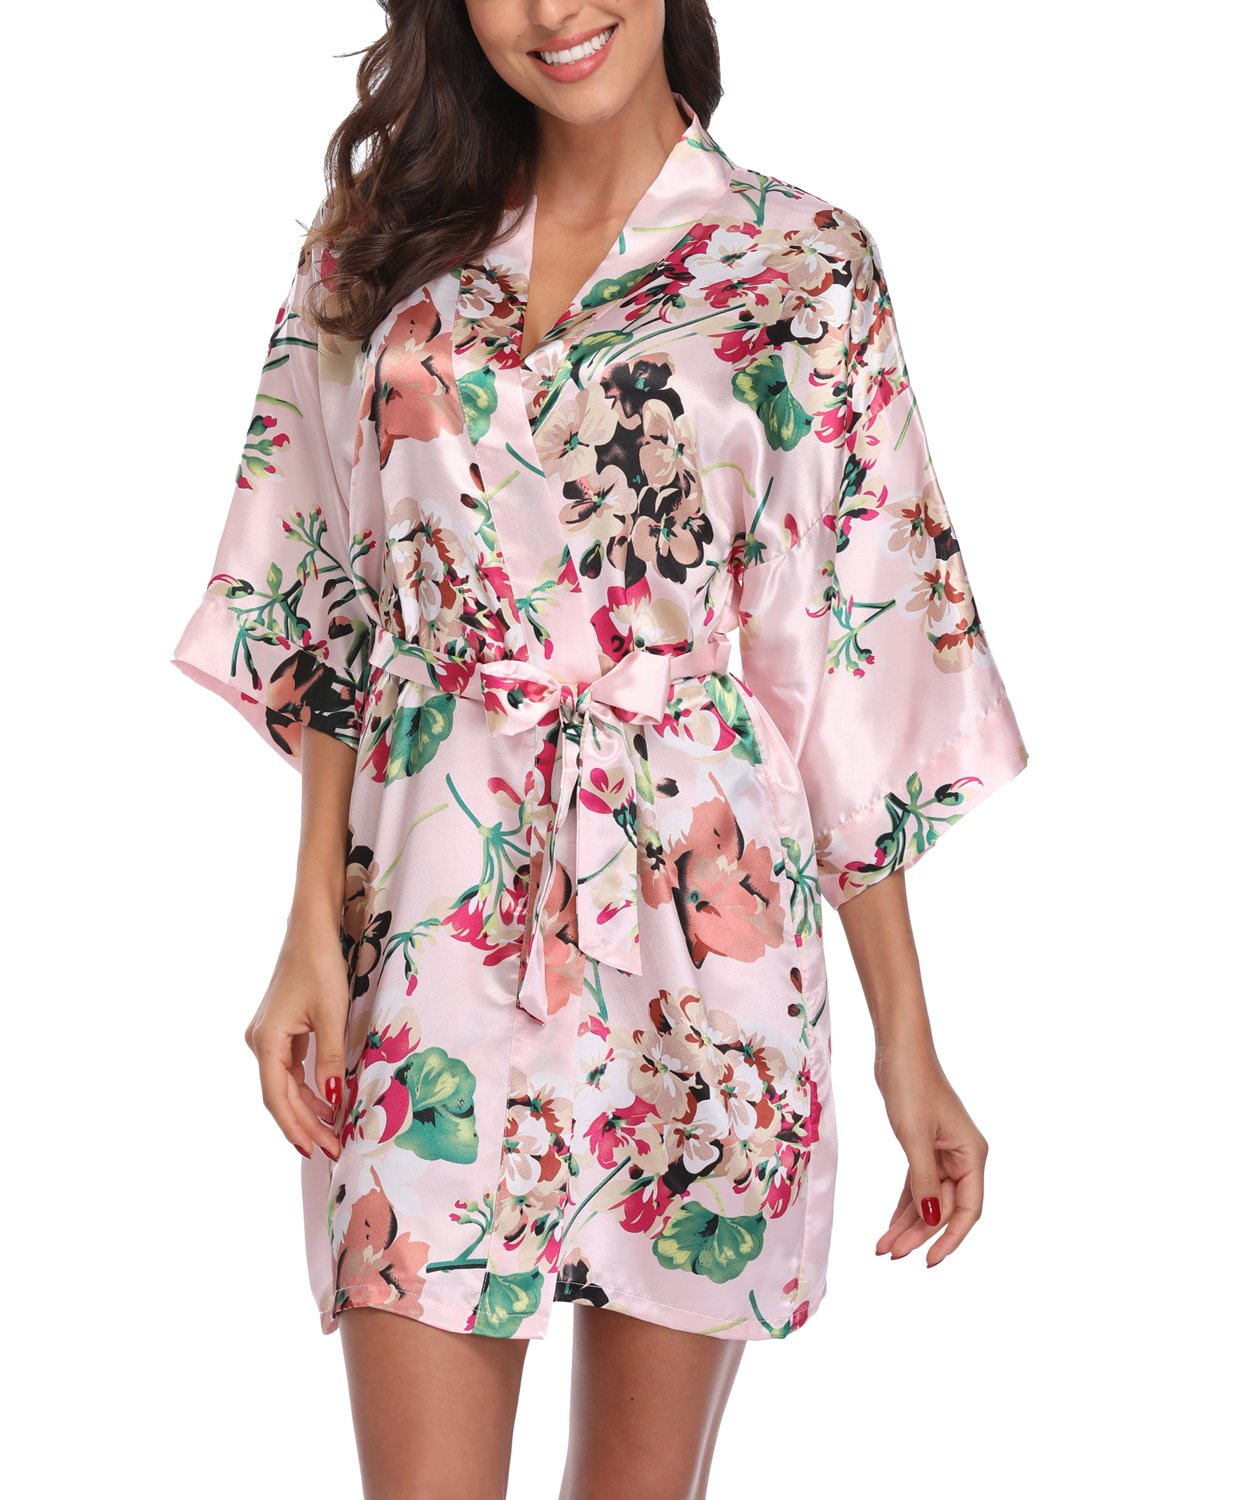 Laurel Snow Women's Satin Floral Kimono Robe Short Bridesmaid Bathrobe for Wedding Party,Pink L